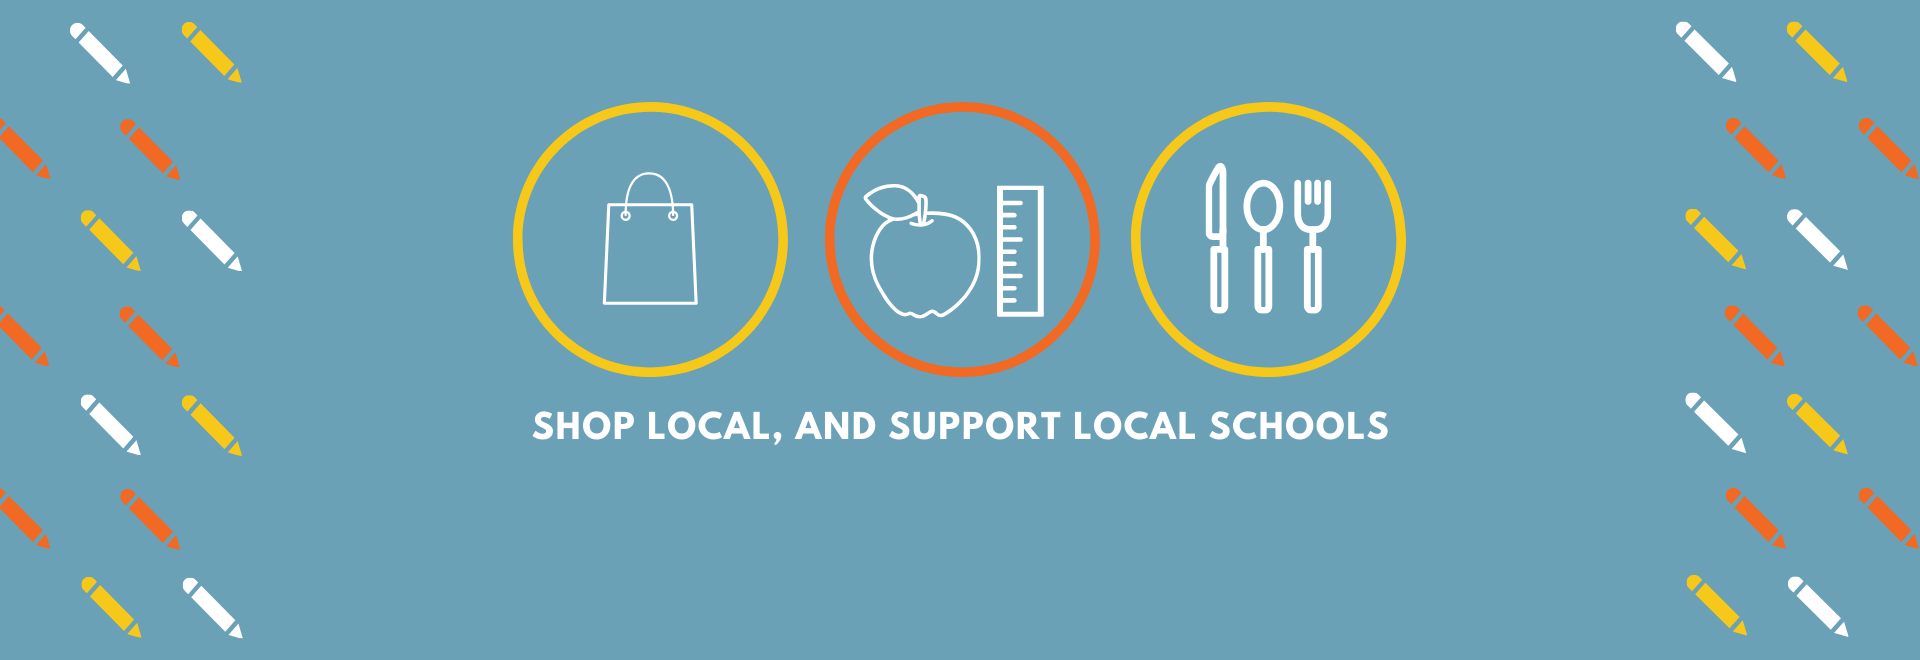 Shop Local After School Program Banner 2017 copy